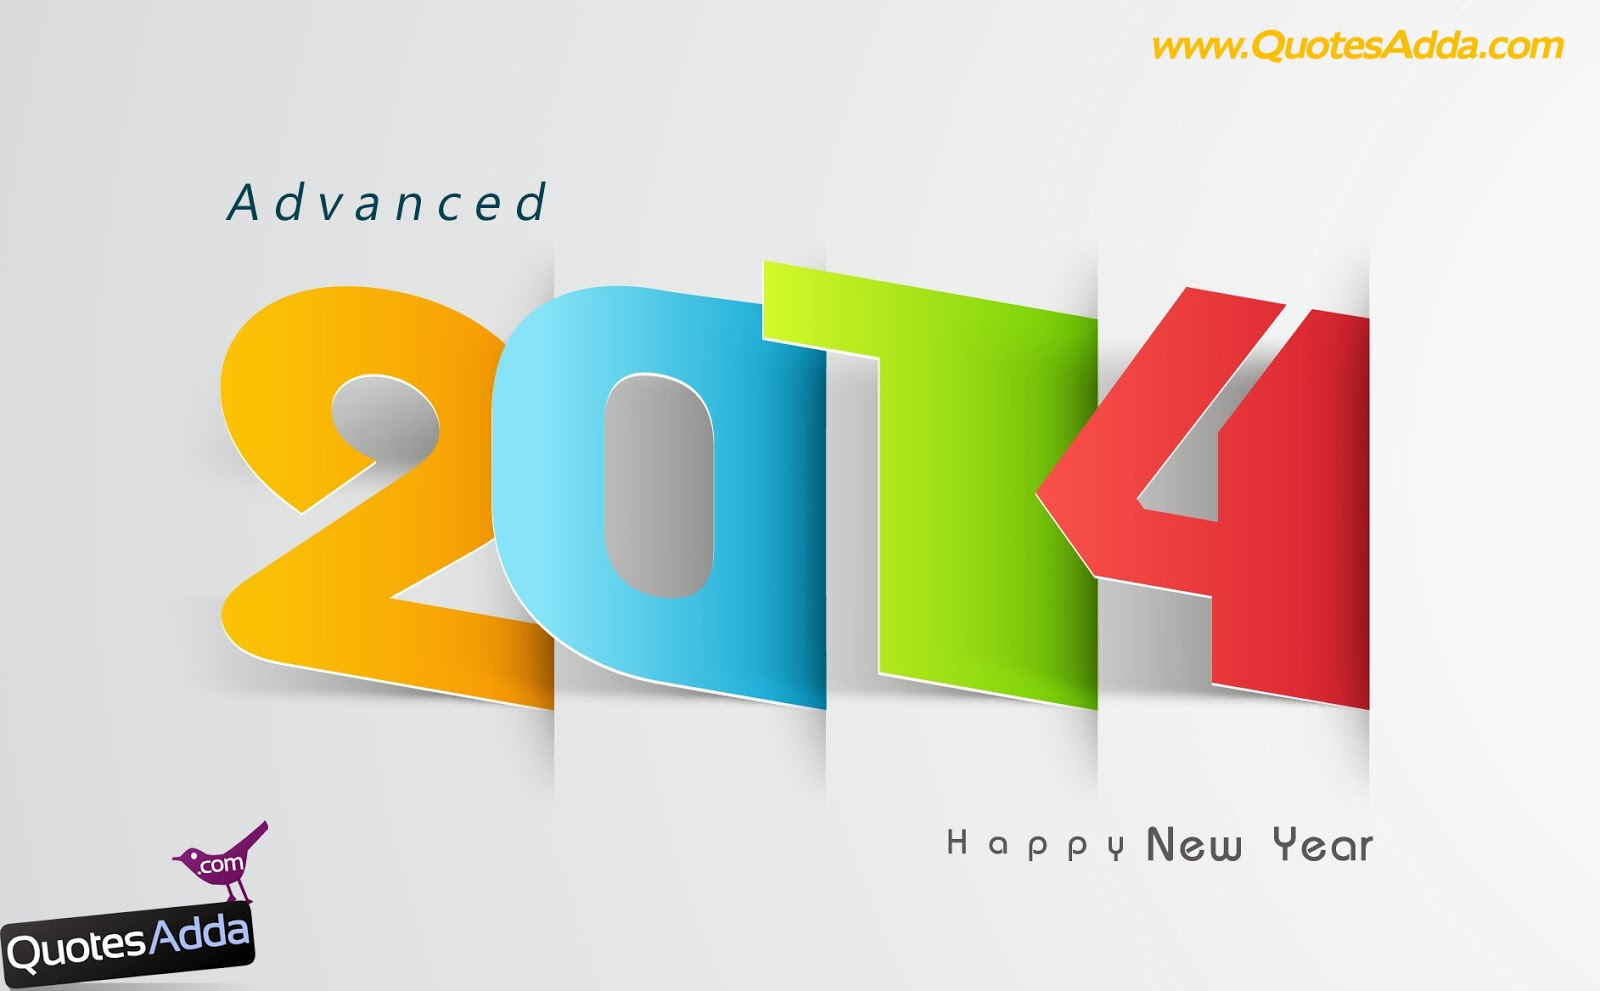 New Year Wallpapers HD  Advance Happy New Year Quotations In English